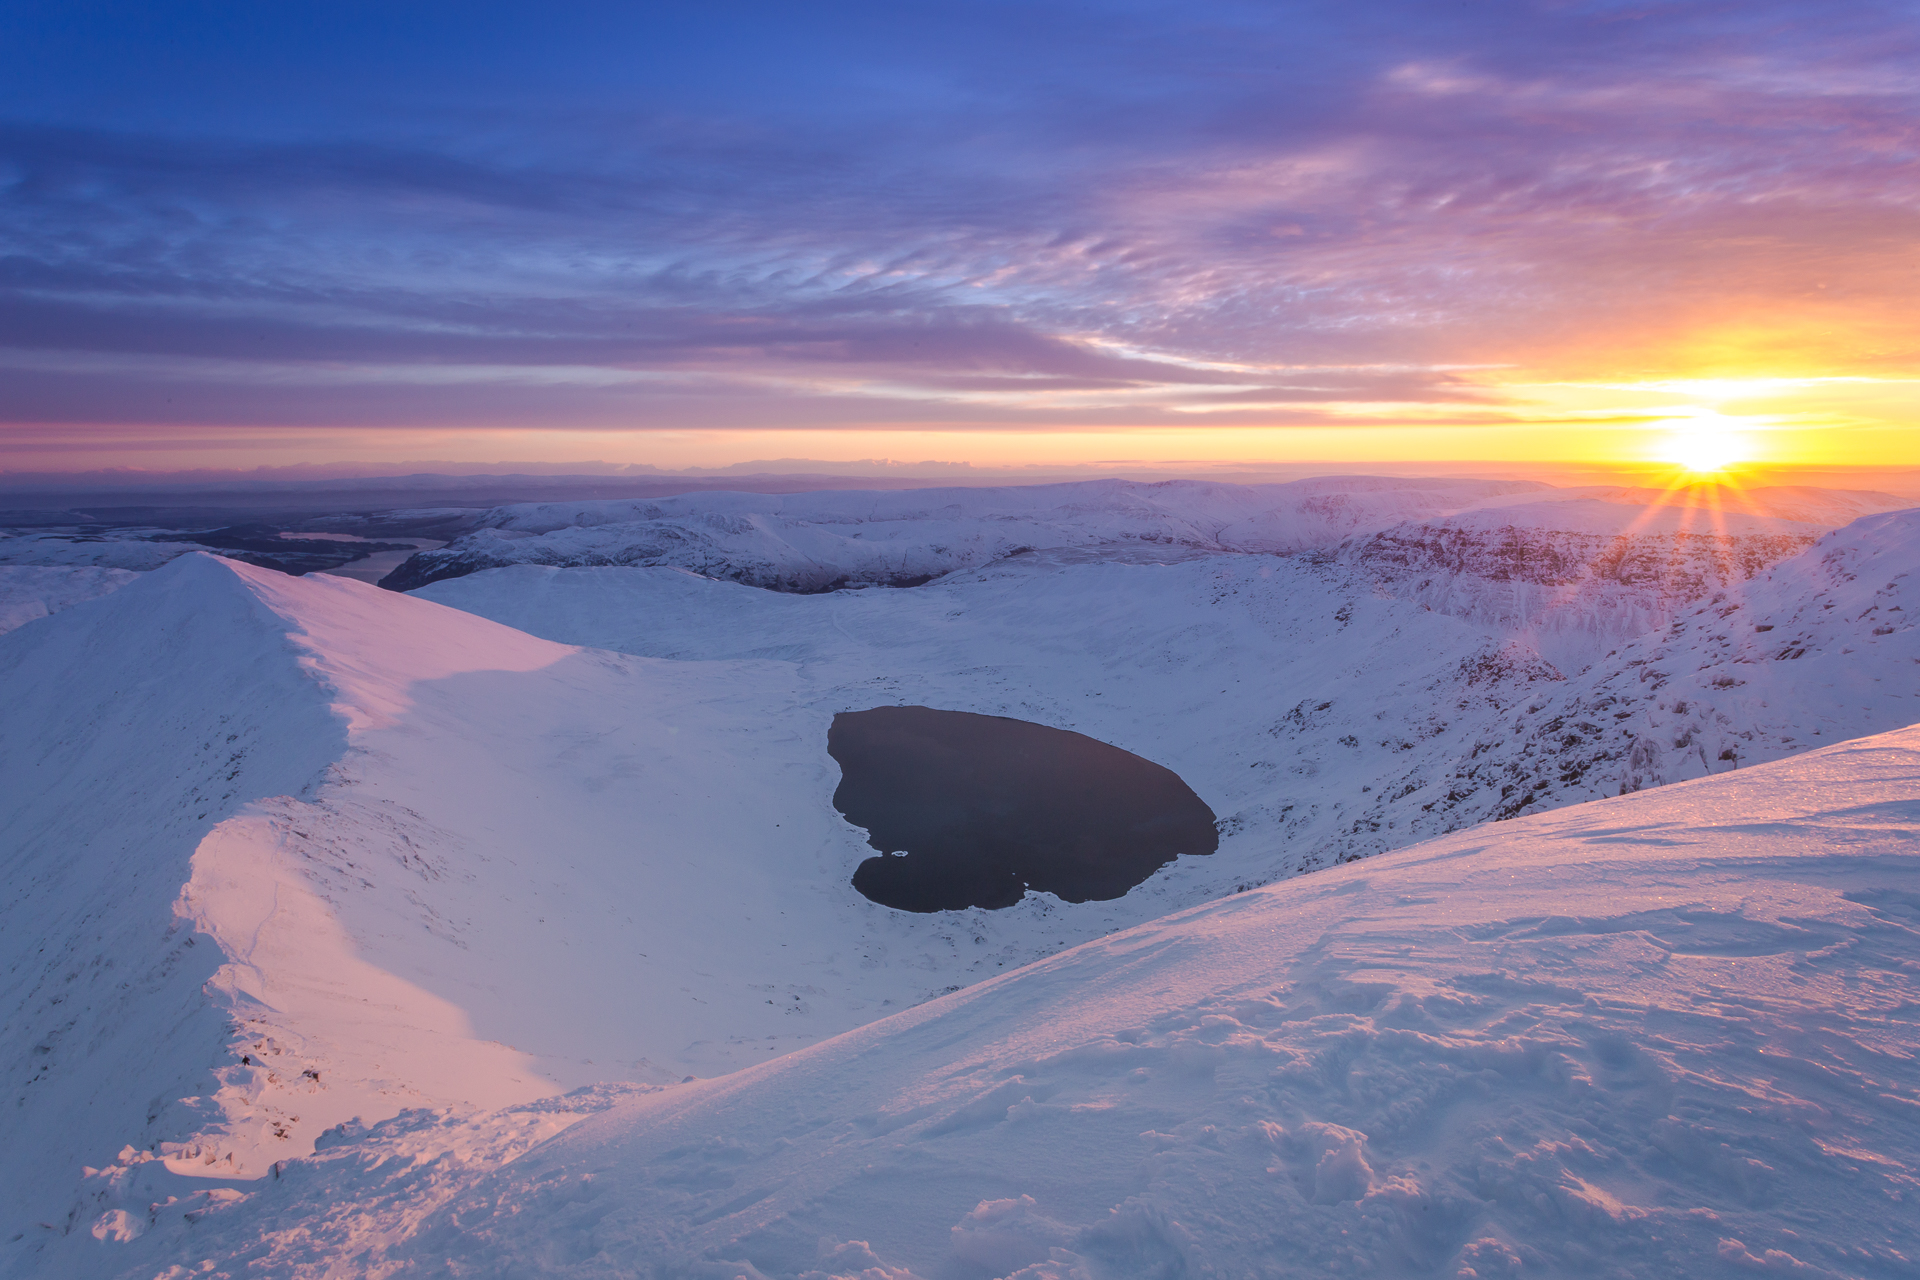 A strong shadow was cast on Swirral Edge by the rising sun